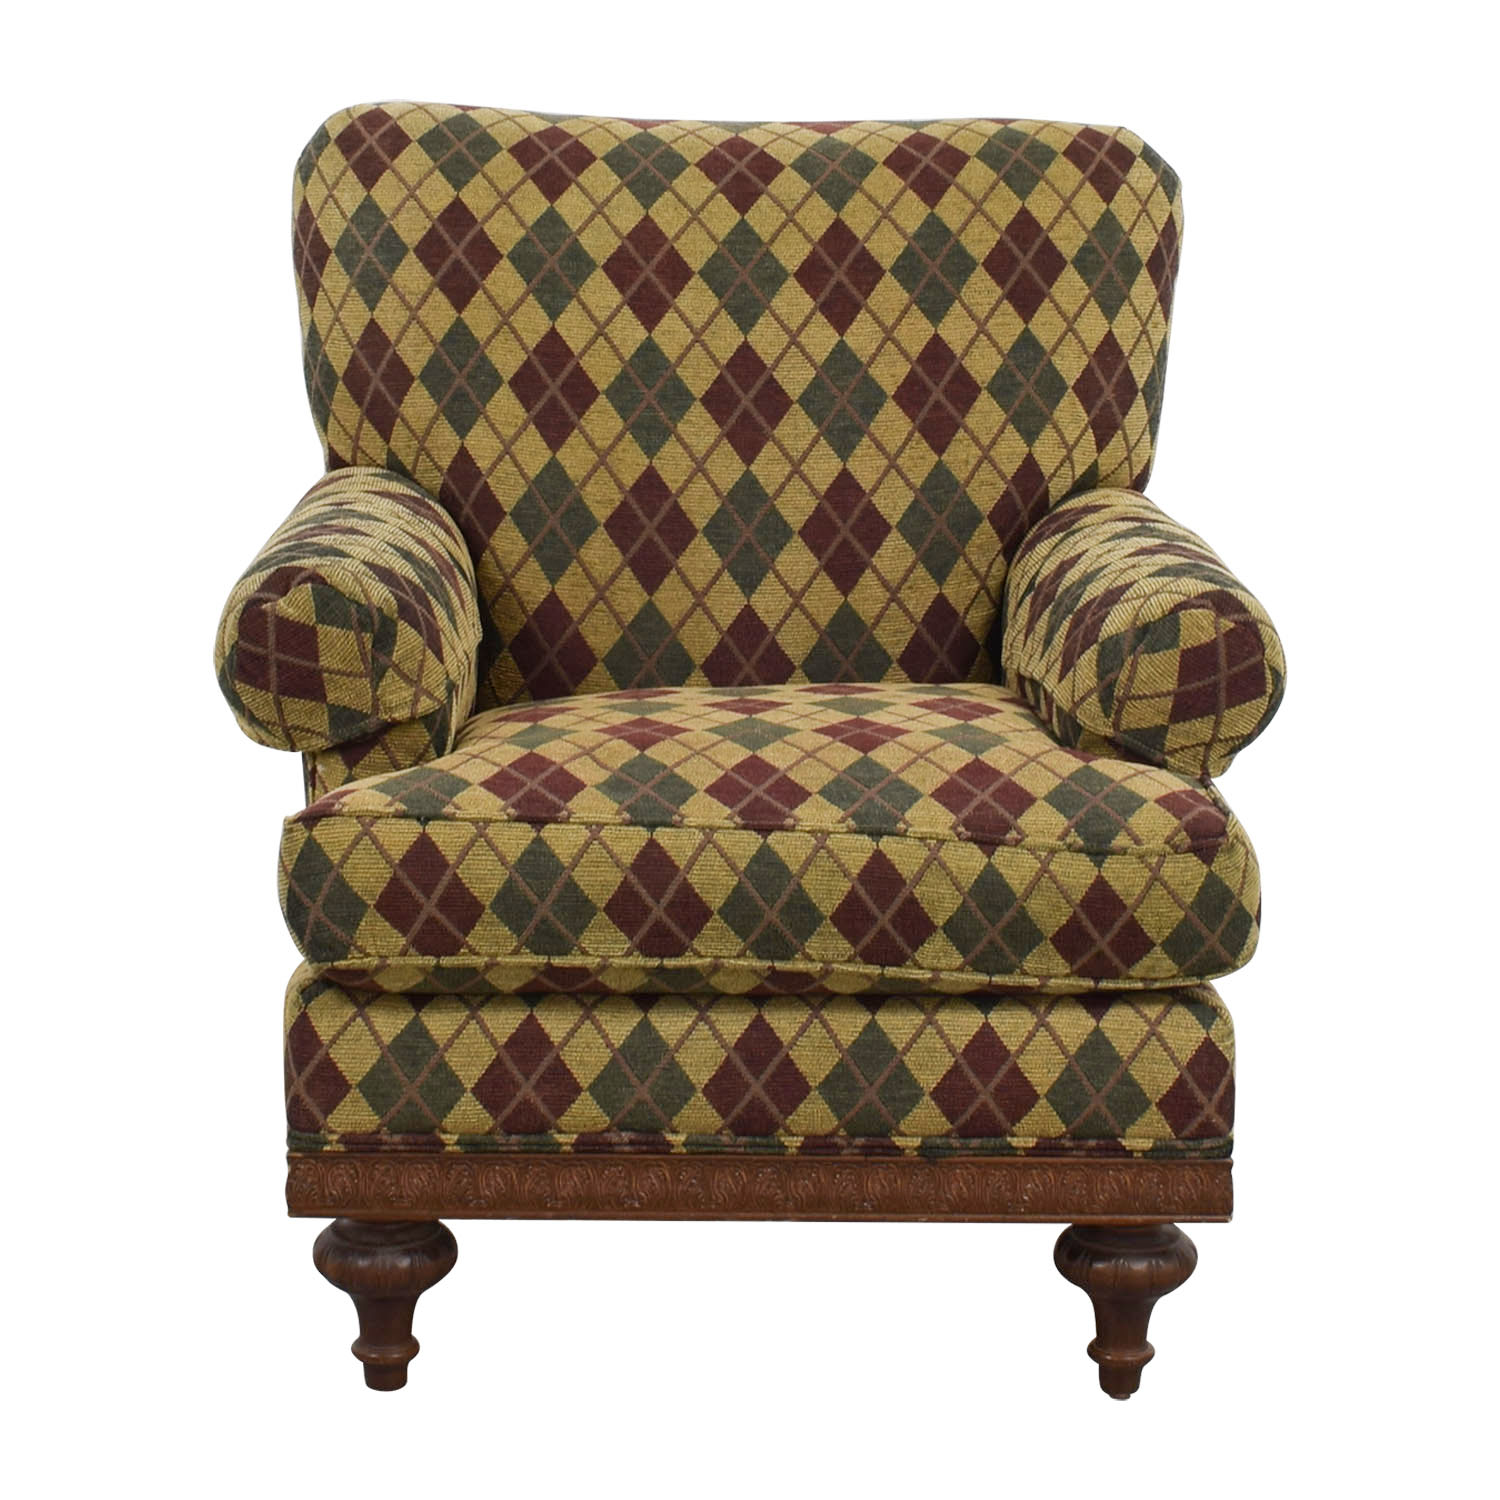 Argyle Upholstered Arm Chair price